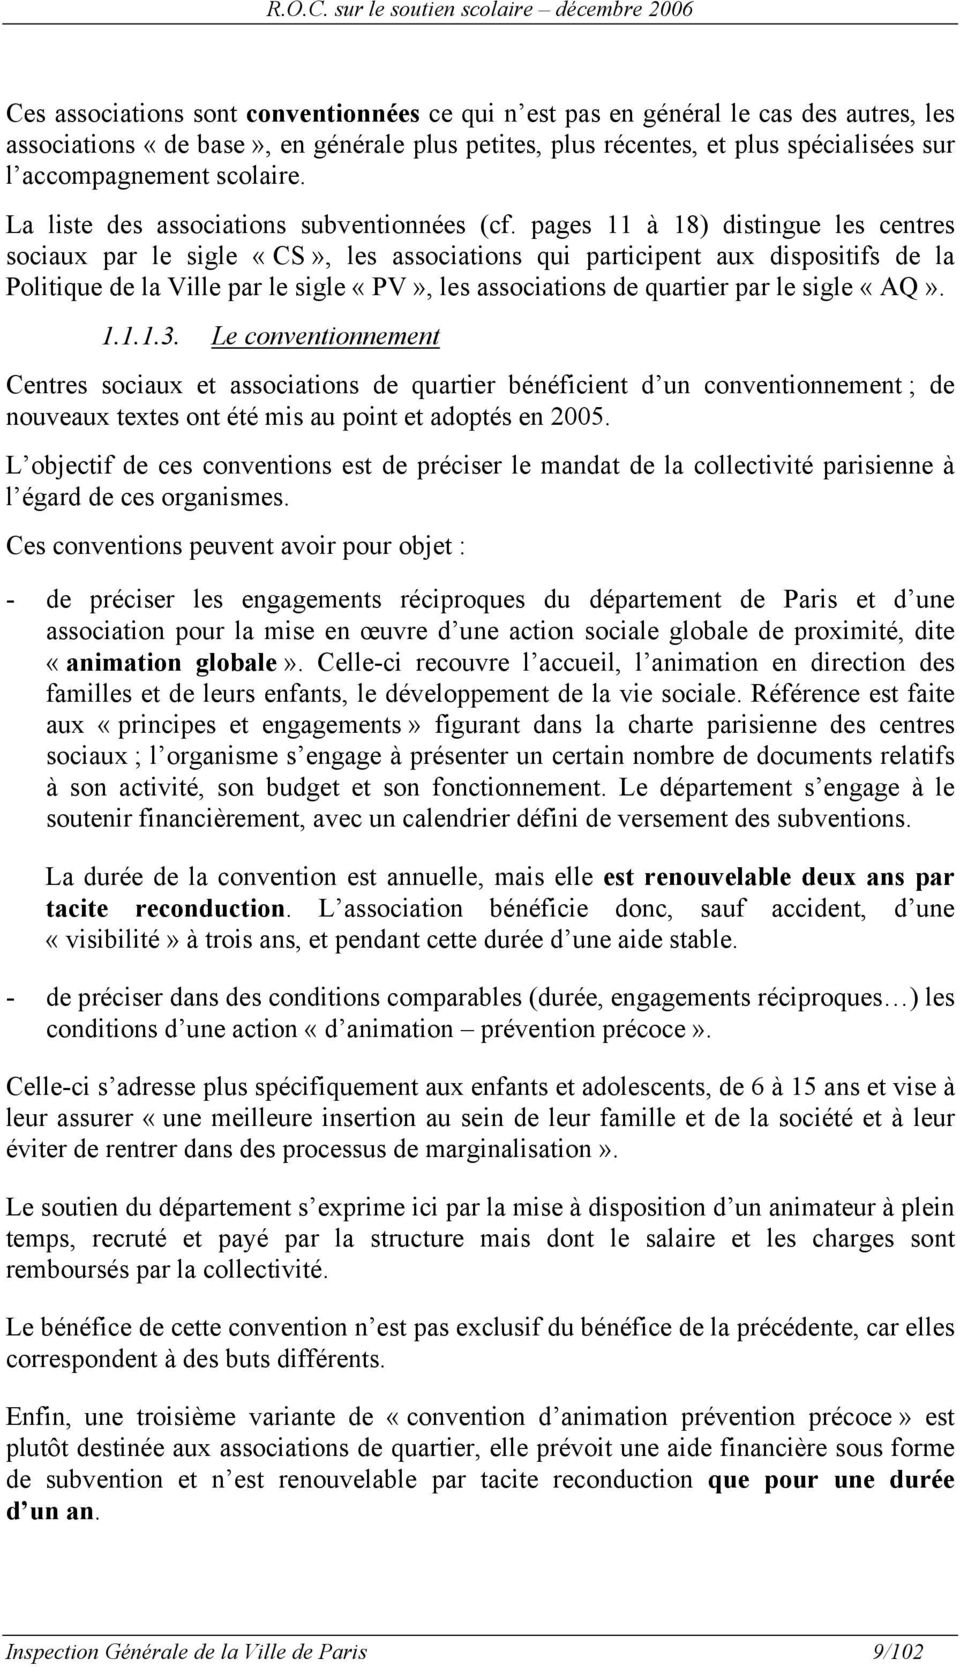 pages 11 à 18) distingue les centres sociaux par le sigle «CS», les associations qui participent aux dispositifs de la Politique de la Ville par le sigle «PV», les associations de quartier par le